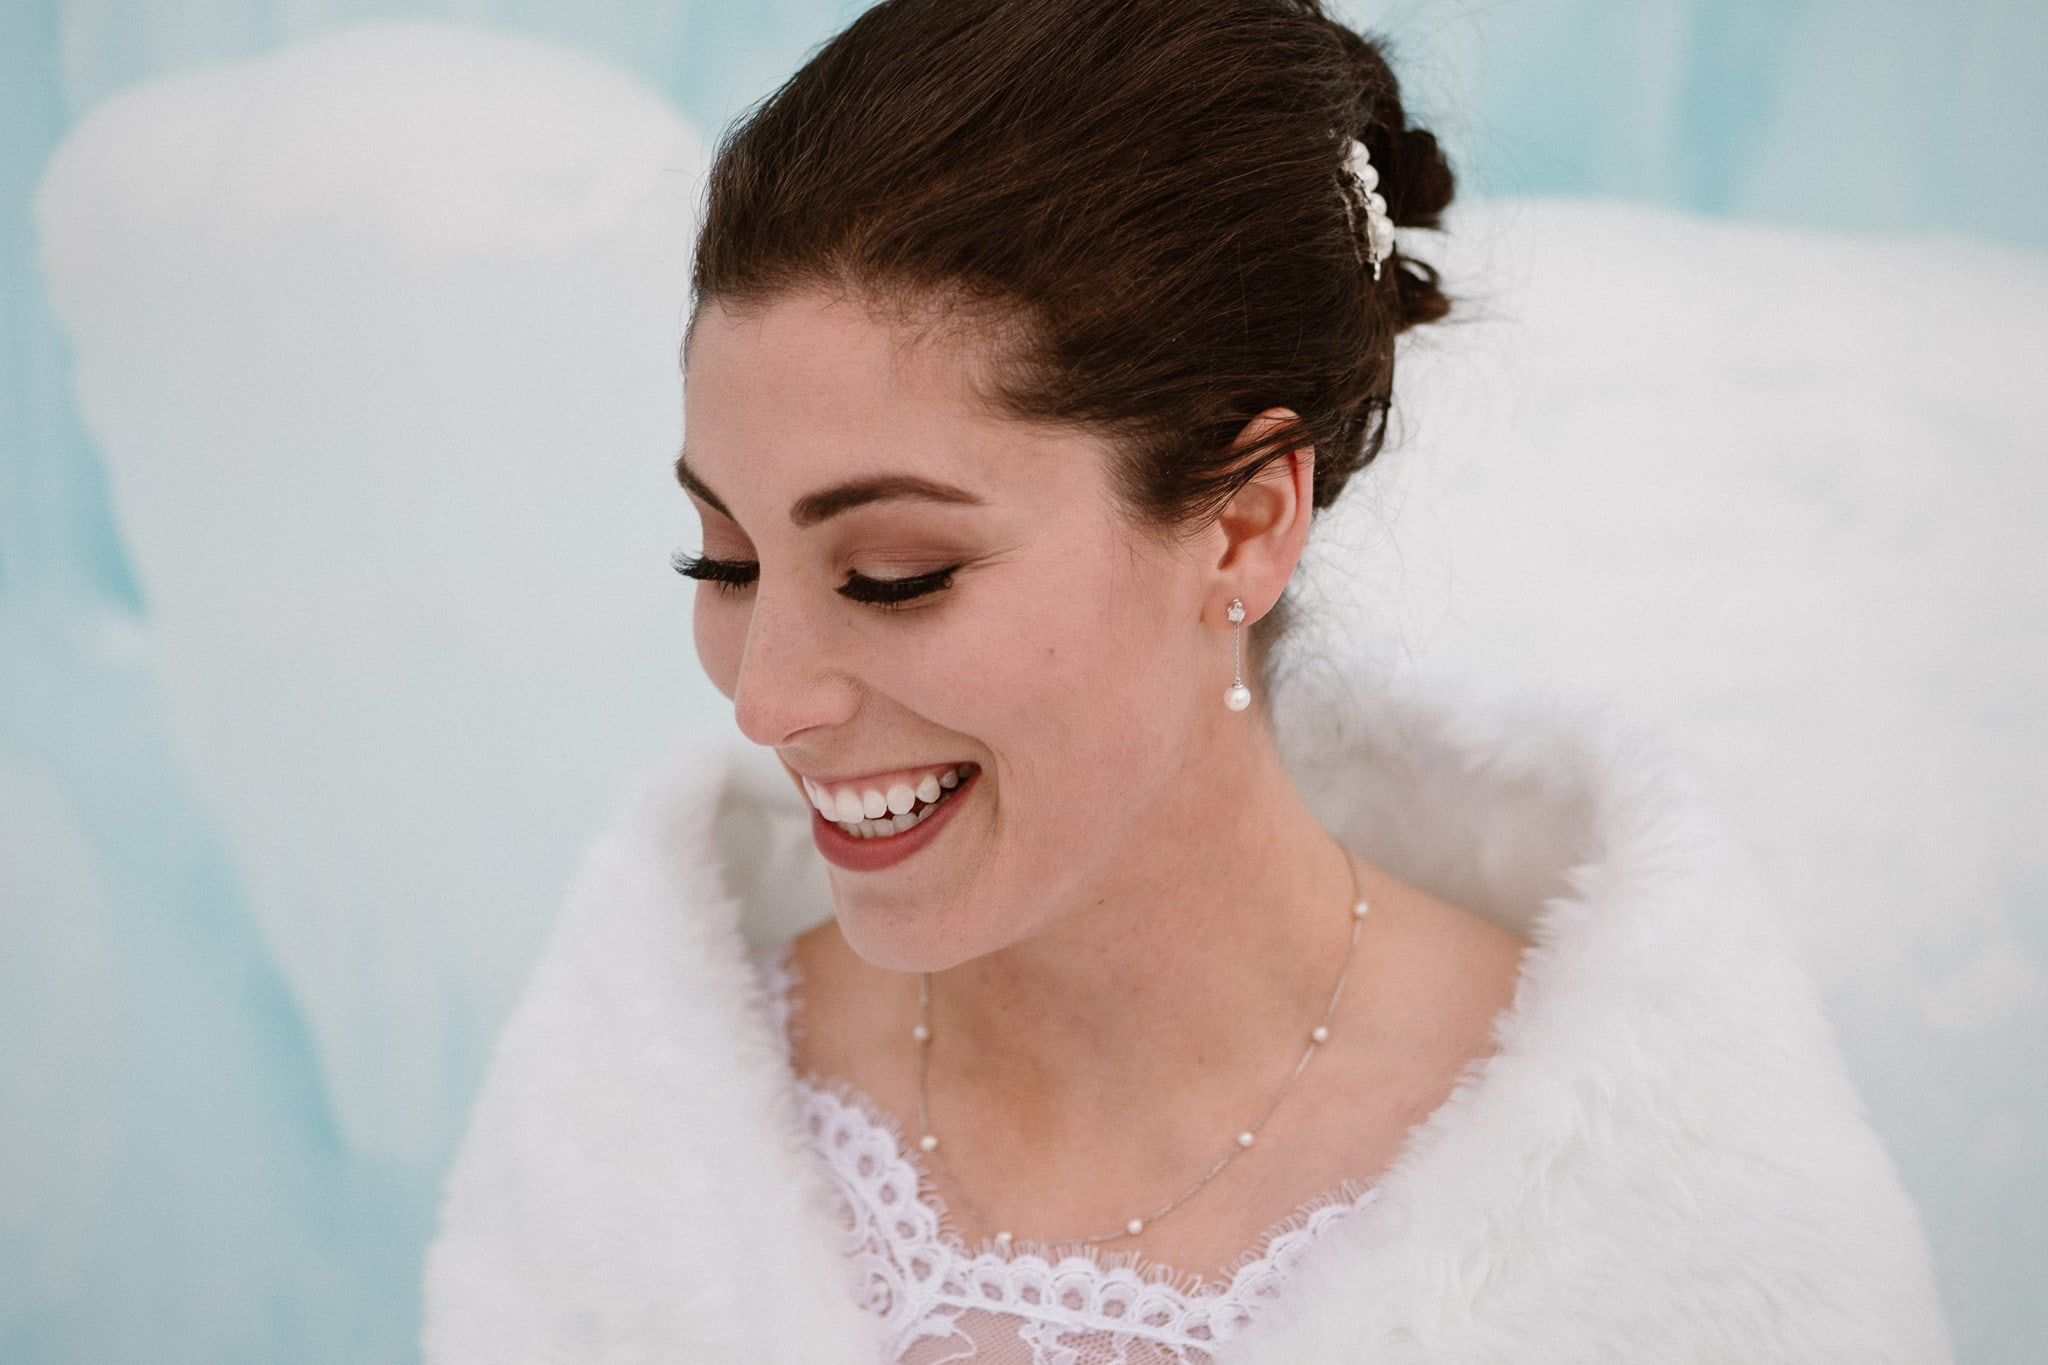 Ice Castles wedding photography, Dillon Colorado winter elopement, closeup of bride inside ice castle